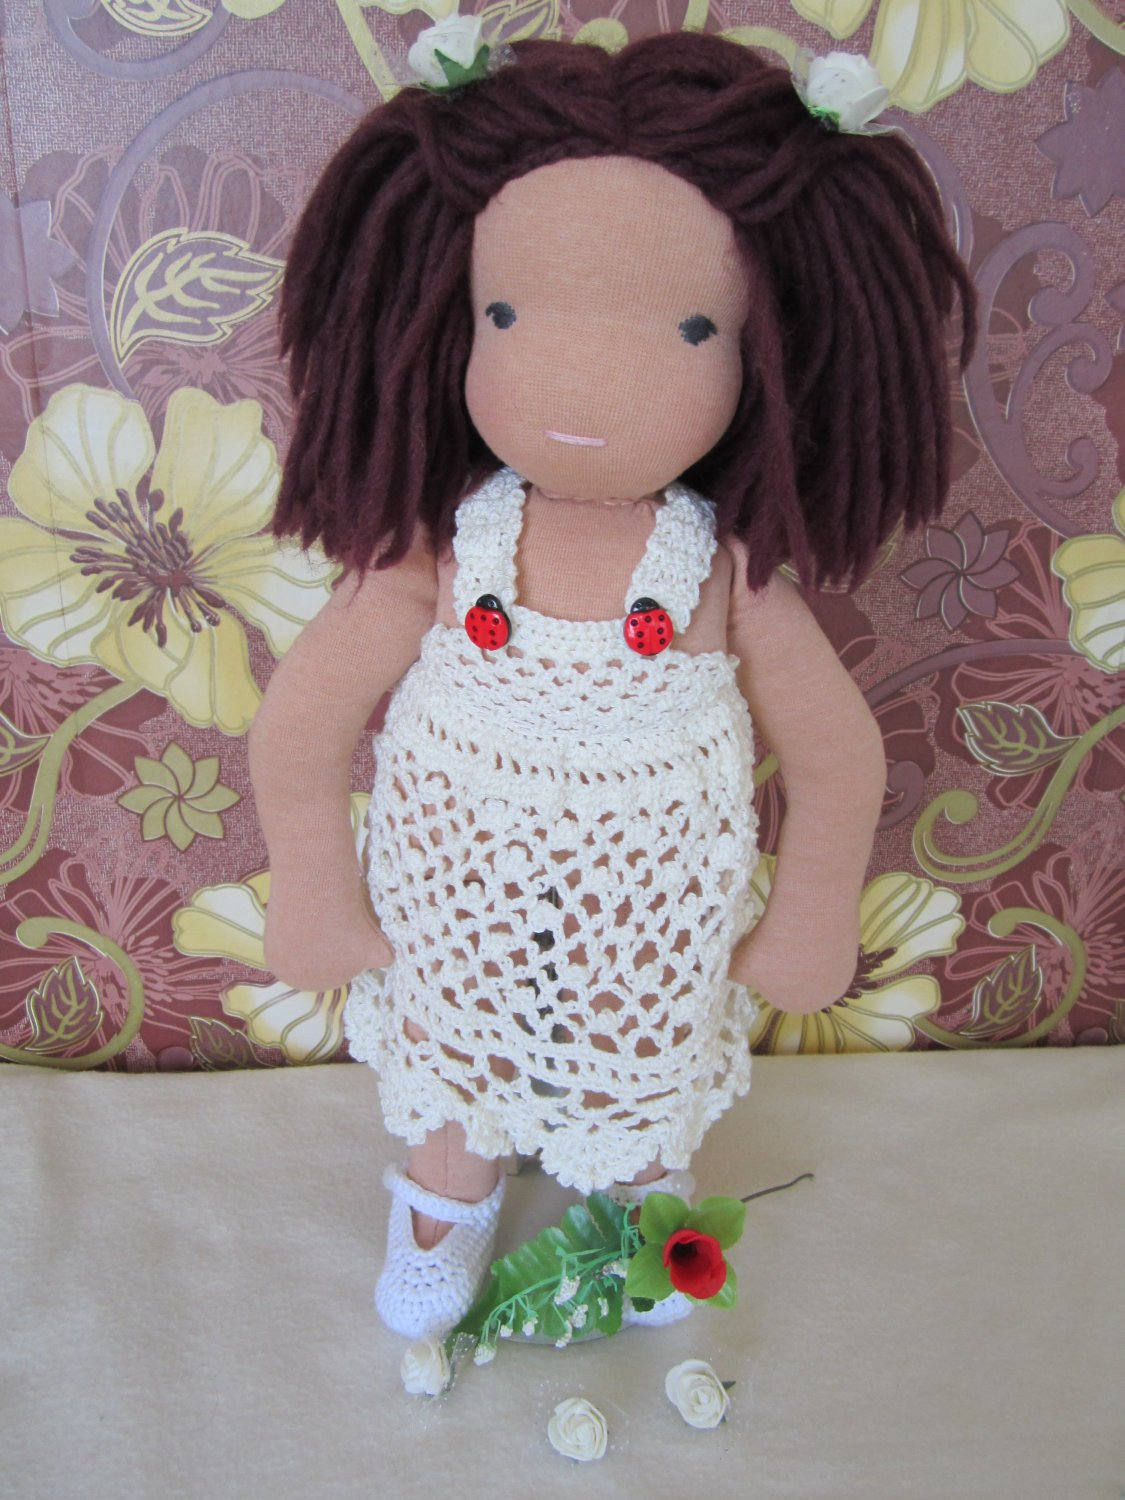 Crochet dress for 16 inches  Waldorf doll in cream color